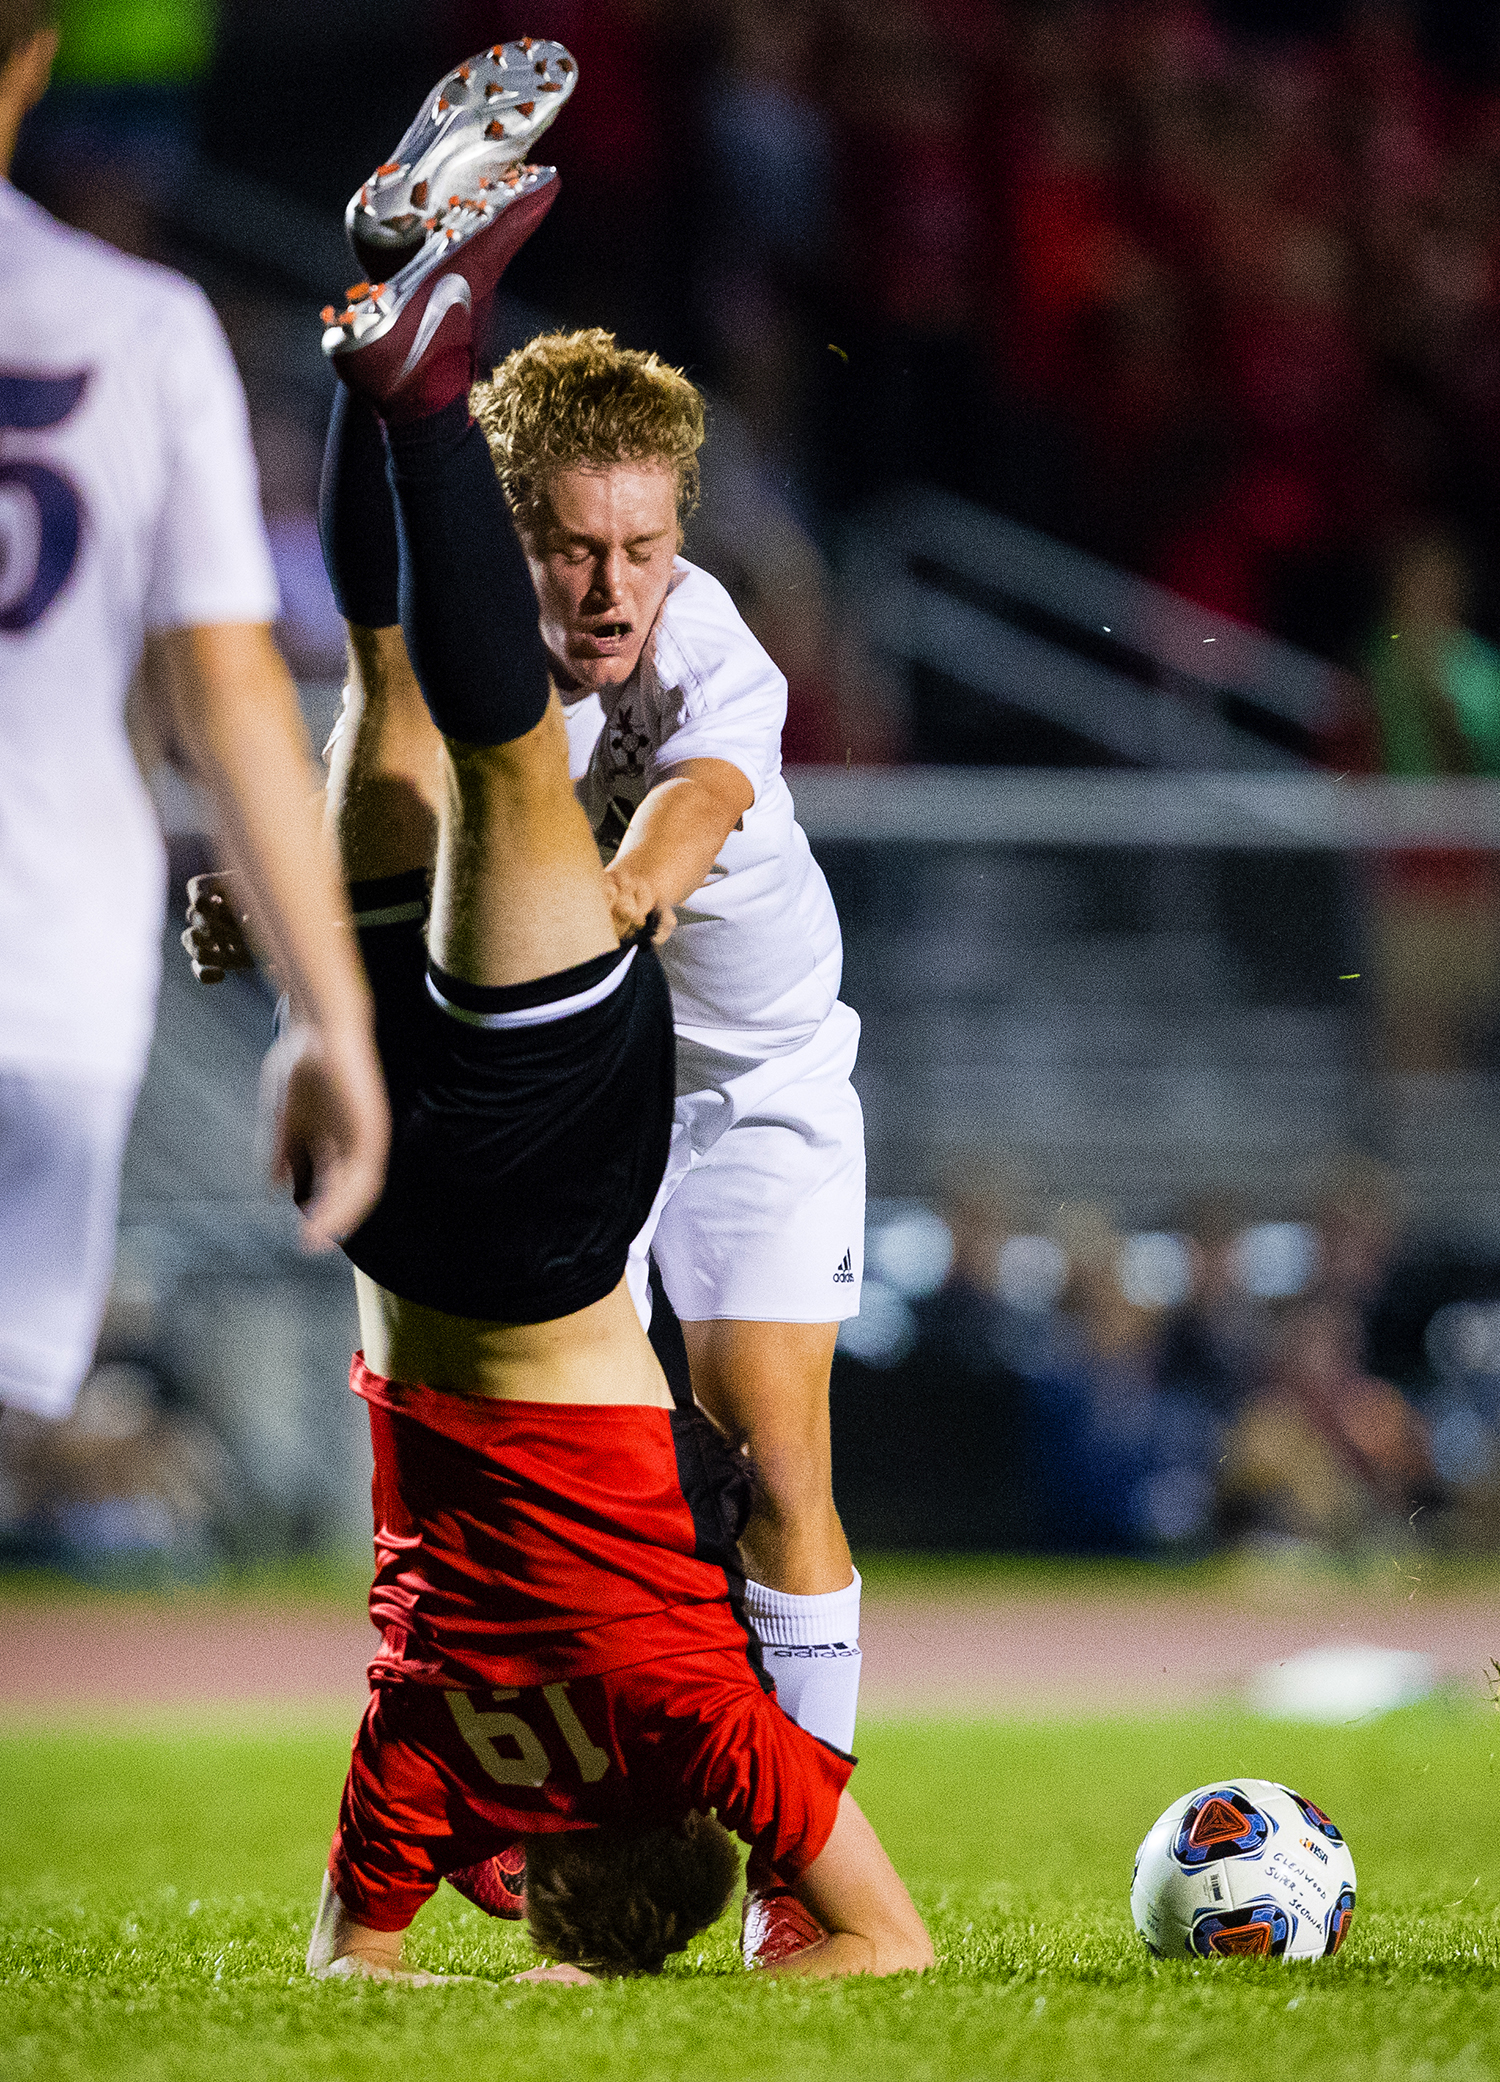 Gibault Catholic's Alex Merlenbach shoves Springfield's Wolf Brethorst over after the two got tangled up during the IHSA Class 2A Glenwood Soccer Supersectional at Glenwood High School Tuesday, Oct. 30, 2018. [Ted Schurter/The State Journal-Register]